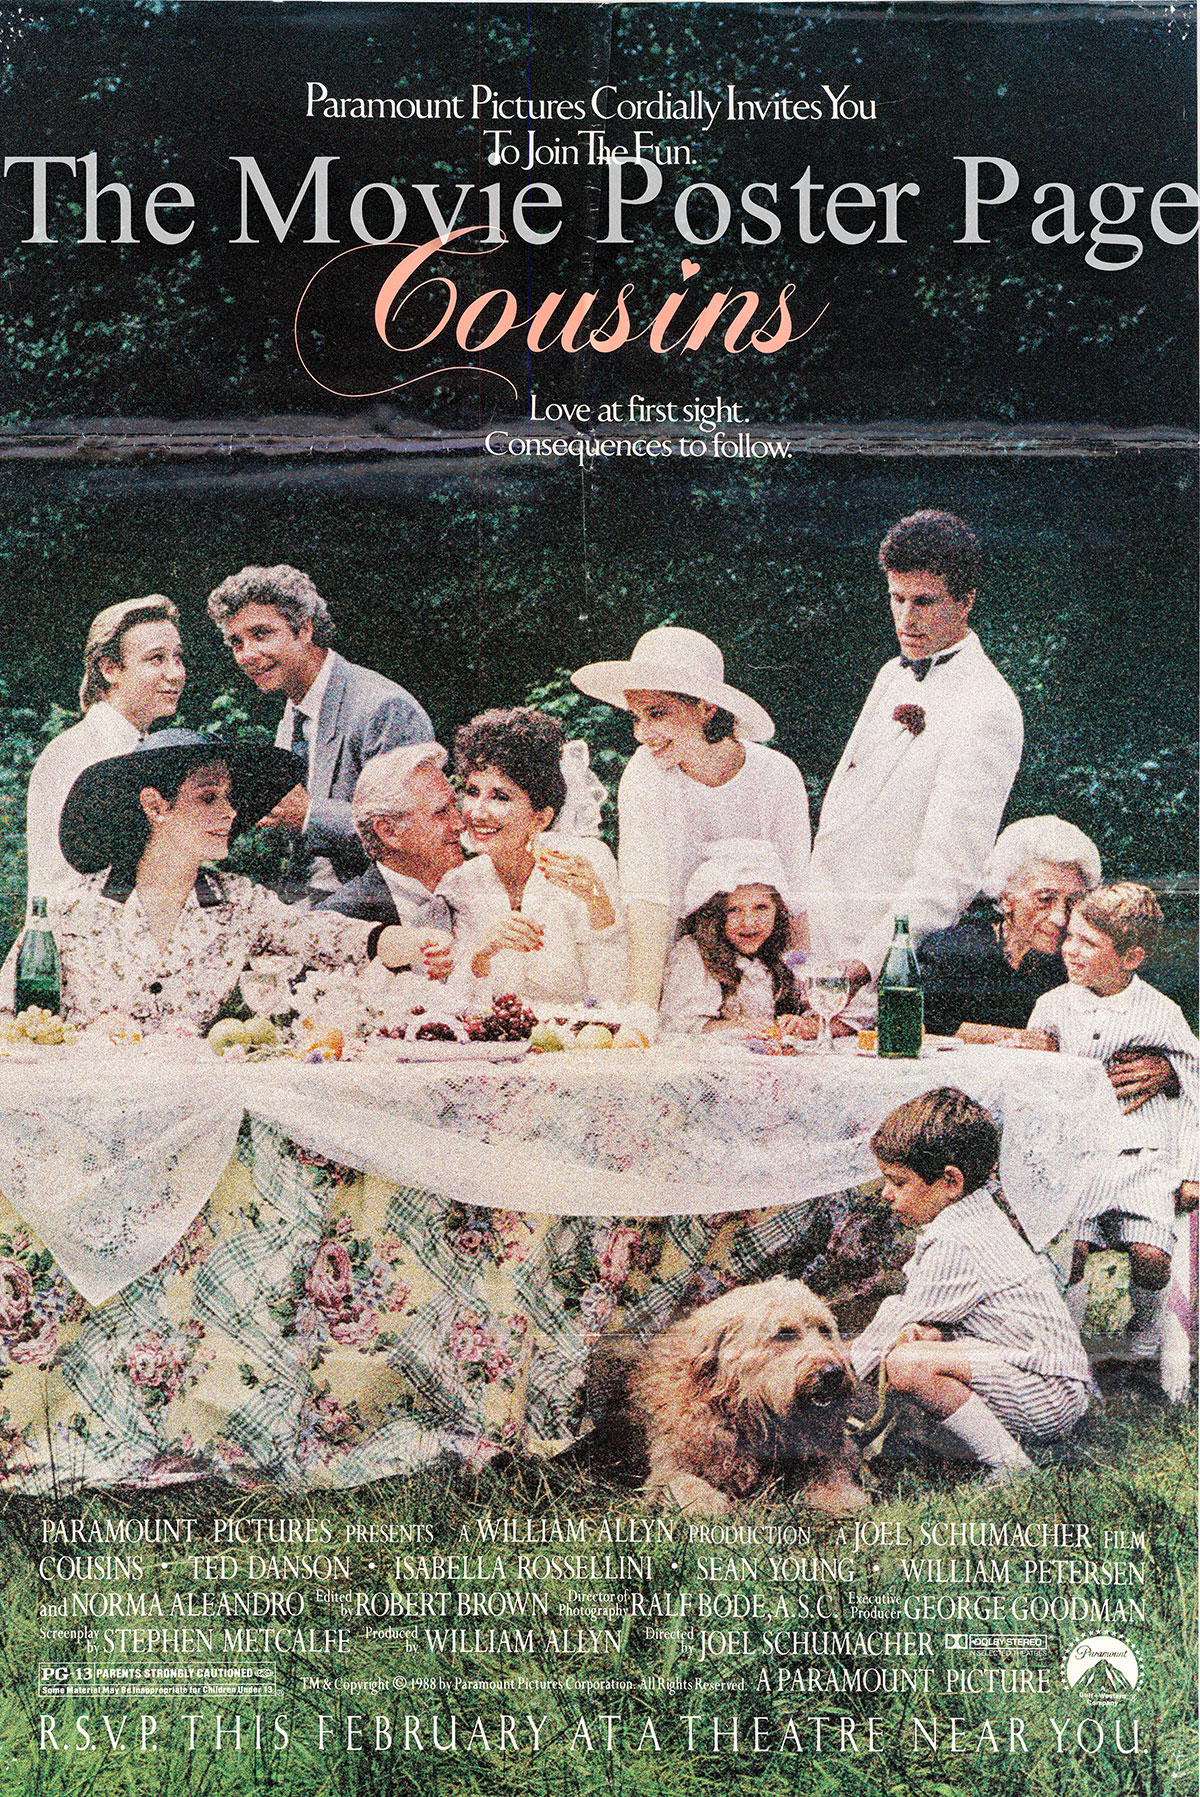 Pictured is a US one-sheet promotional poster for the 1988 Joel Schumacher film Cousins starring Ted Danson.